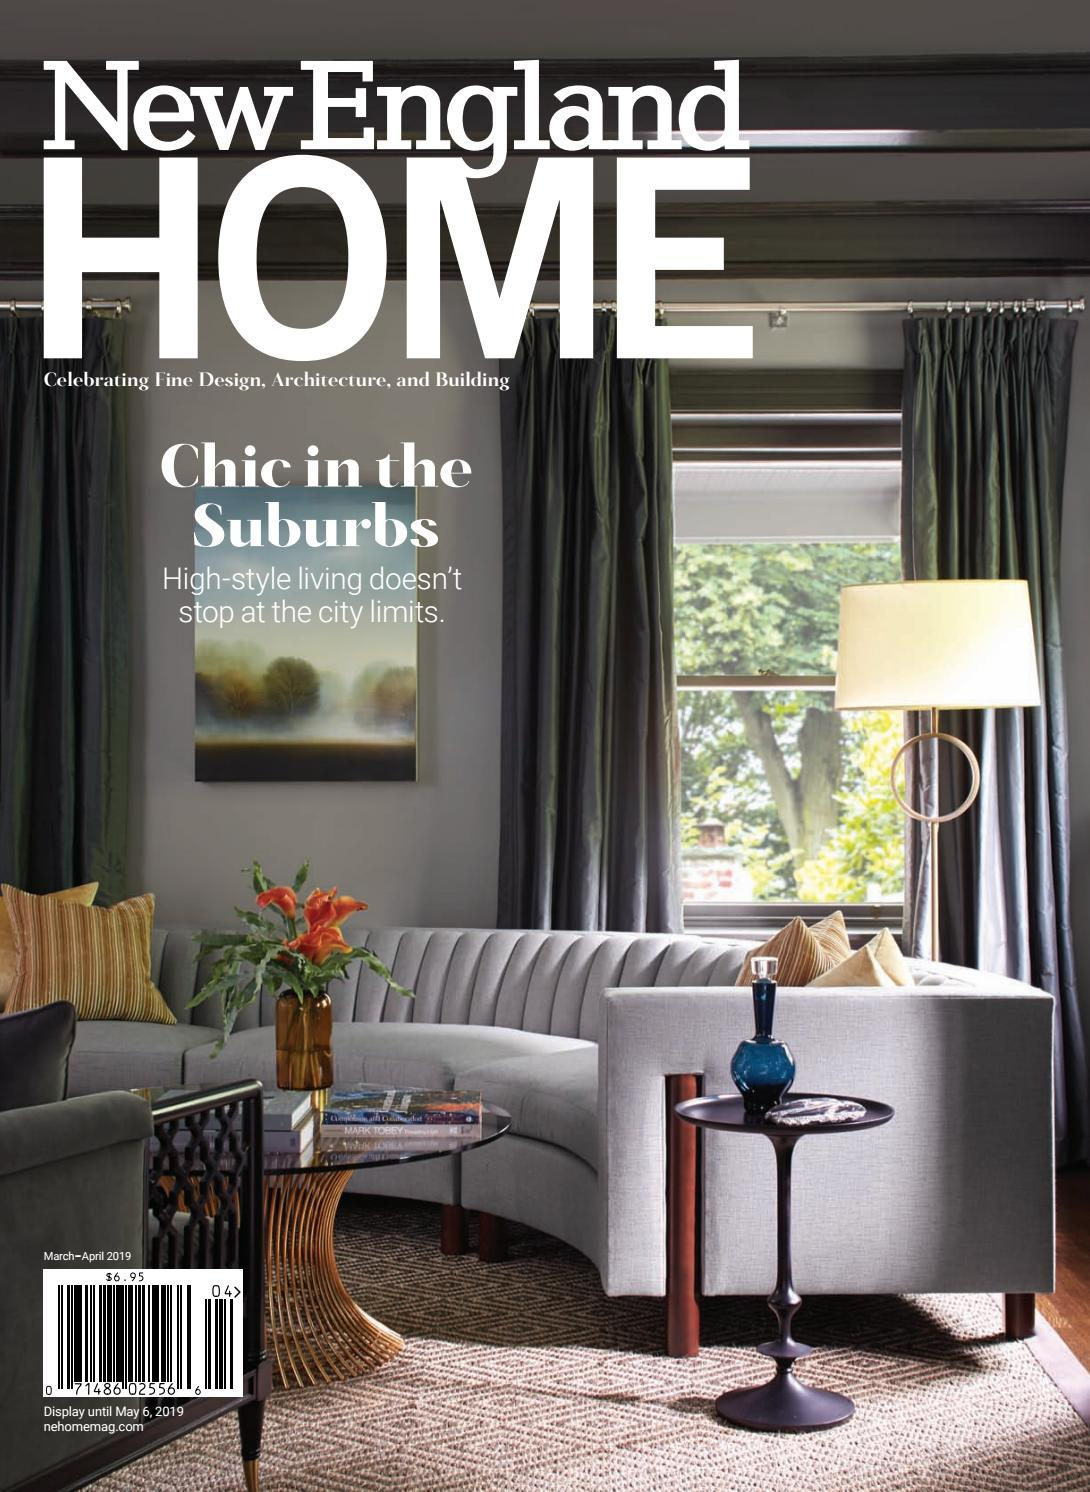 New England Home March April 2019 by nehomemag - issuu